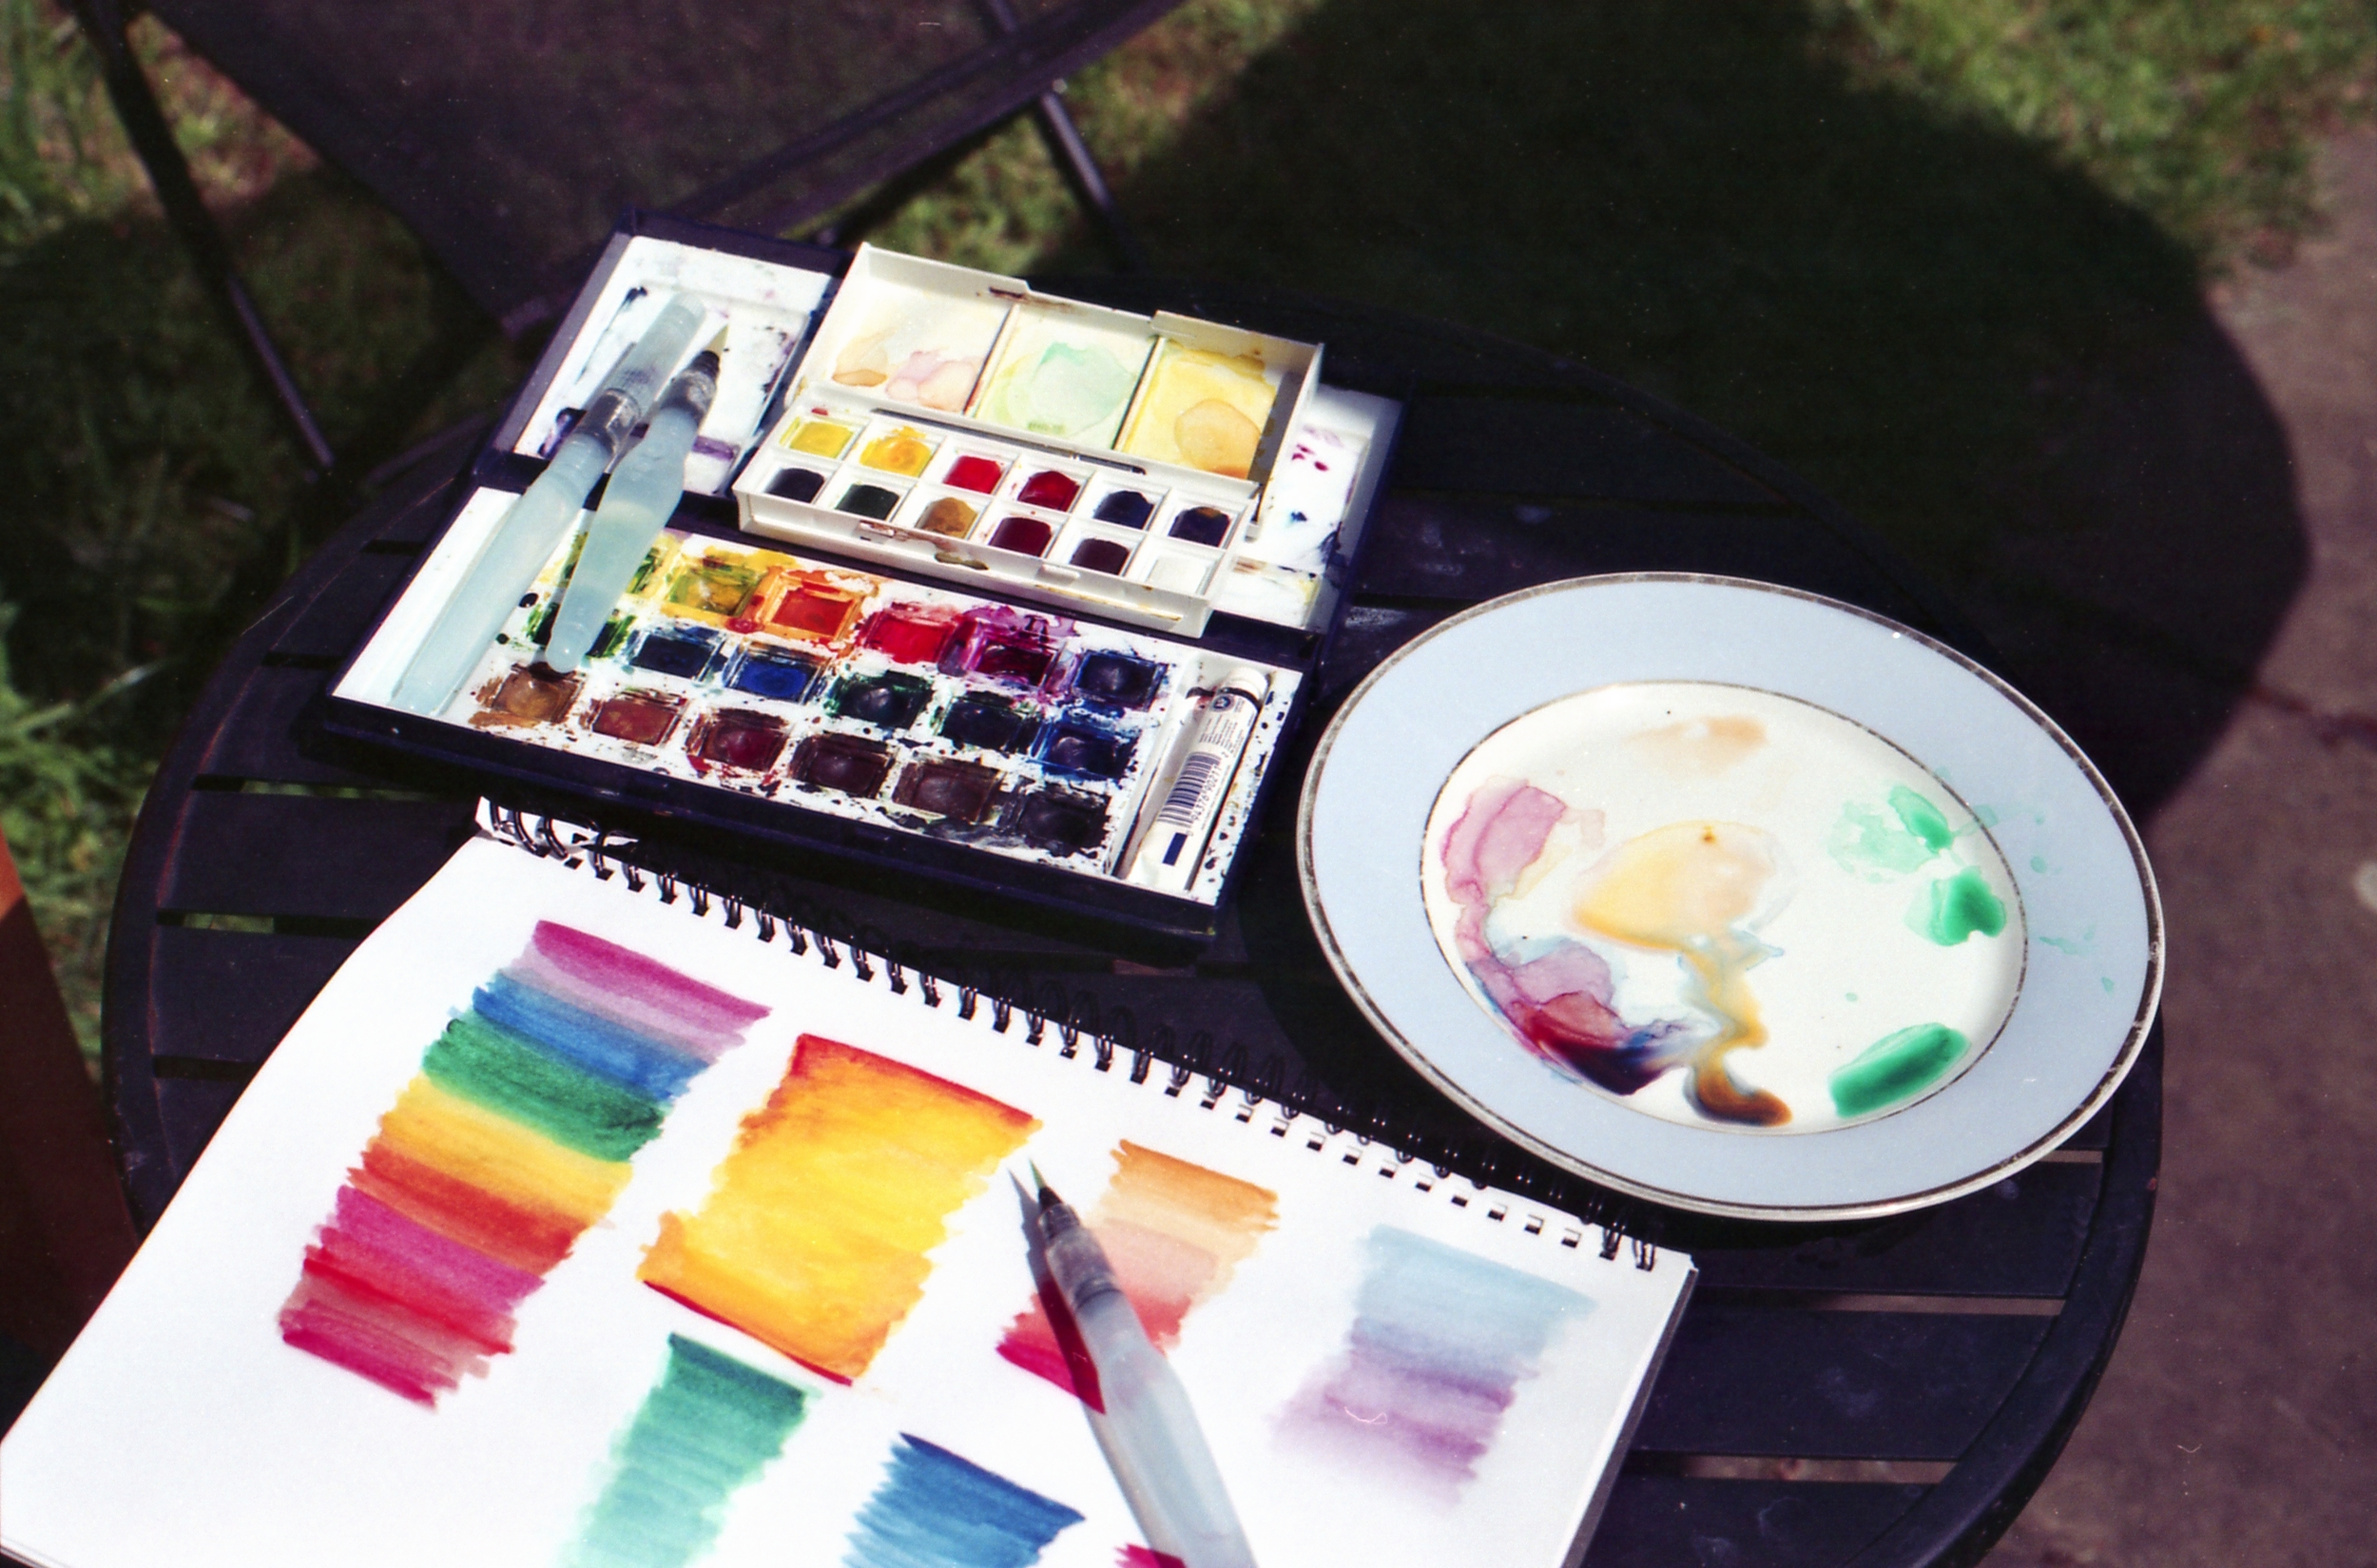 129/366 - I've been playing around with watercolours again recently (that navy messy palette of paints is so old ha!) and I'm loving it especially when its nice enough to paint outside in the sunshine.